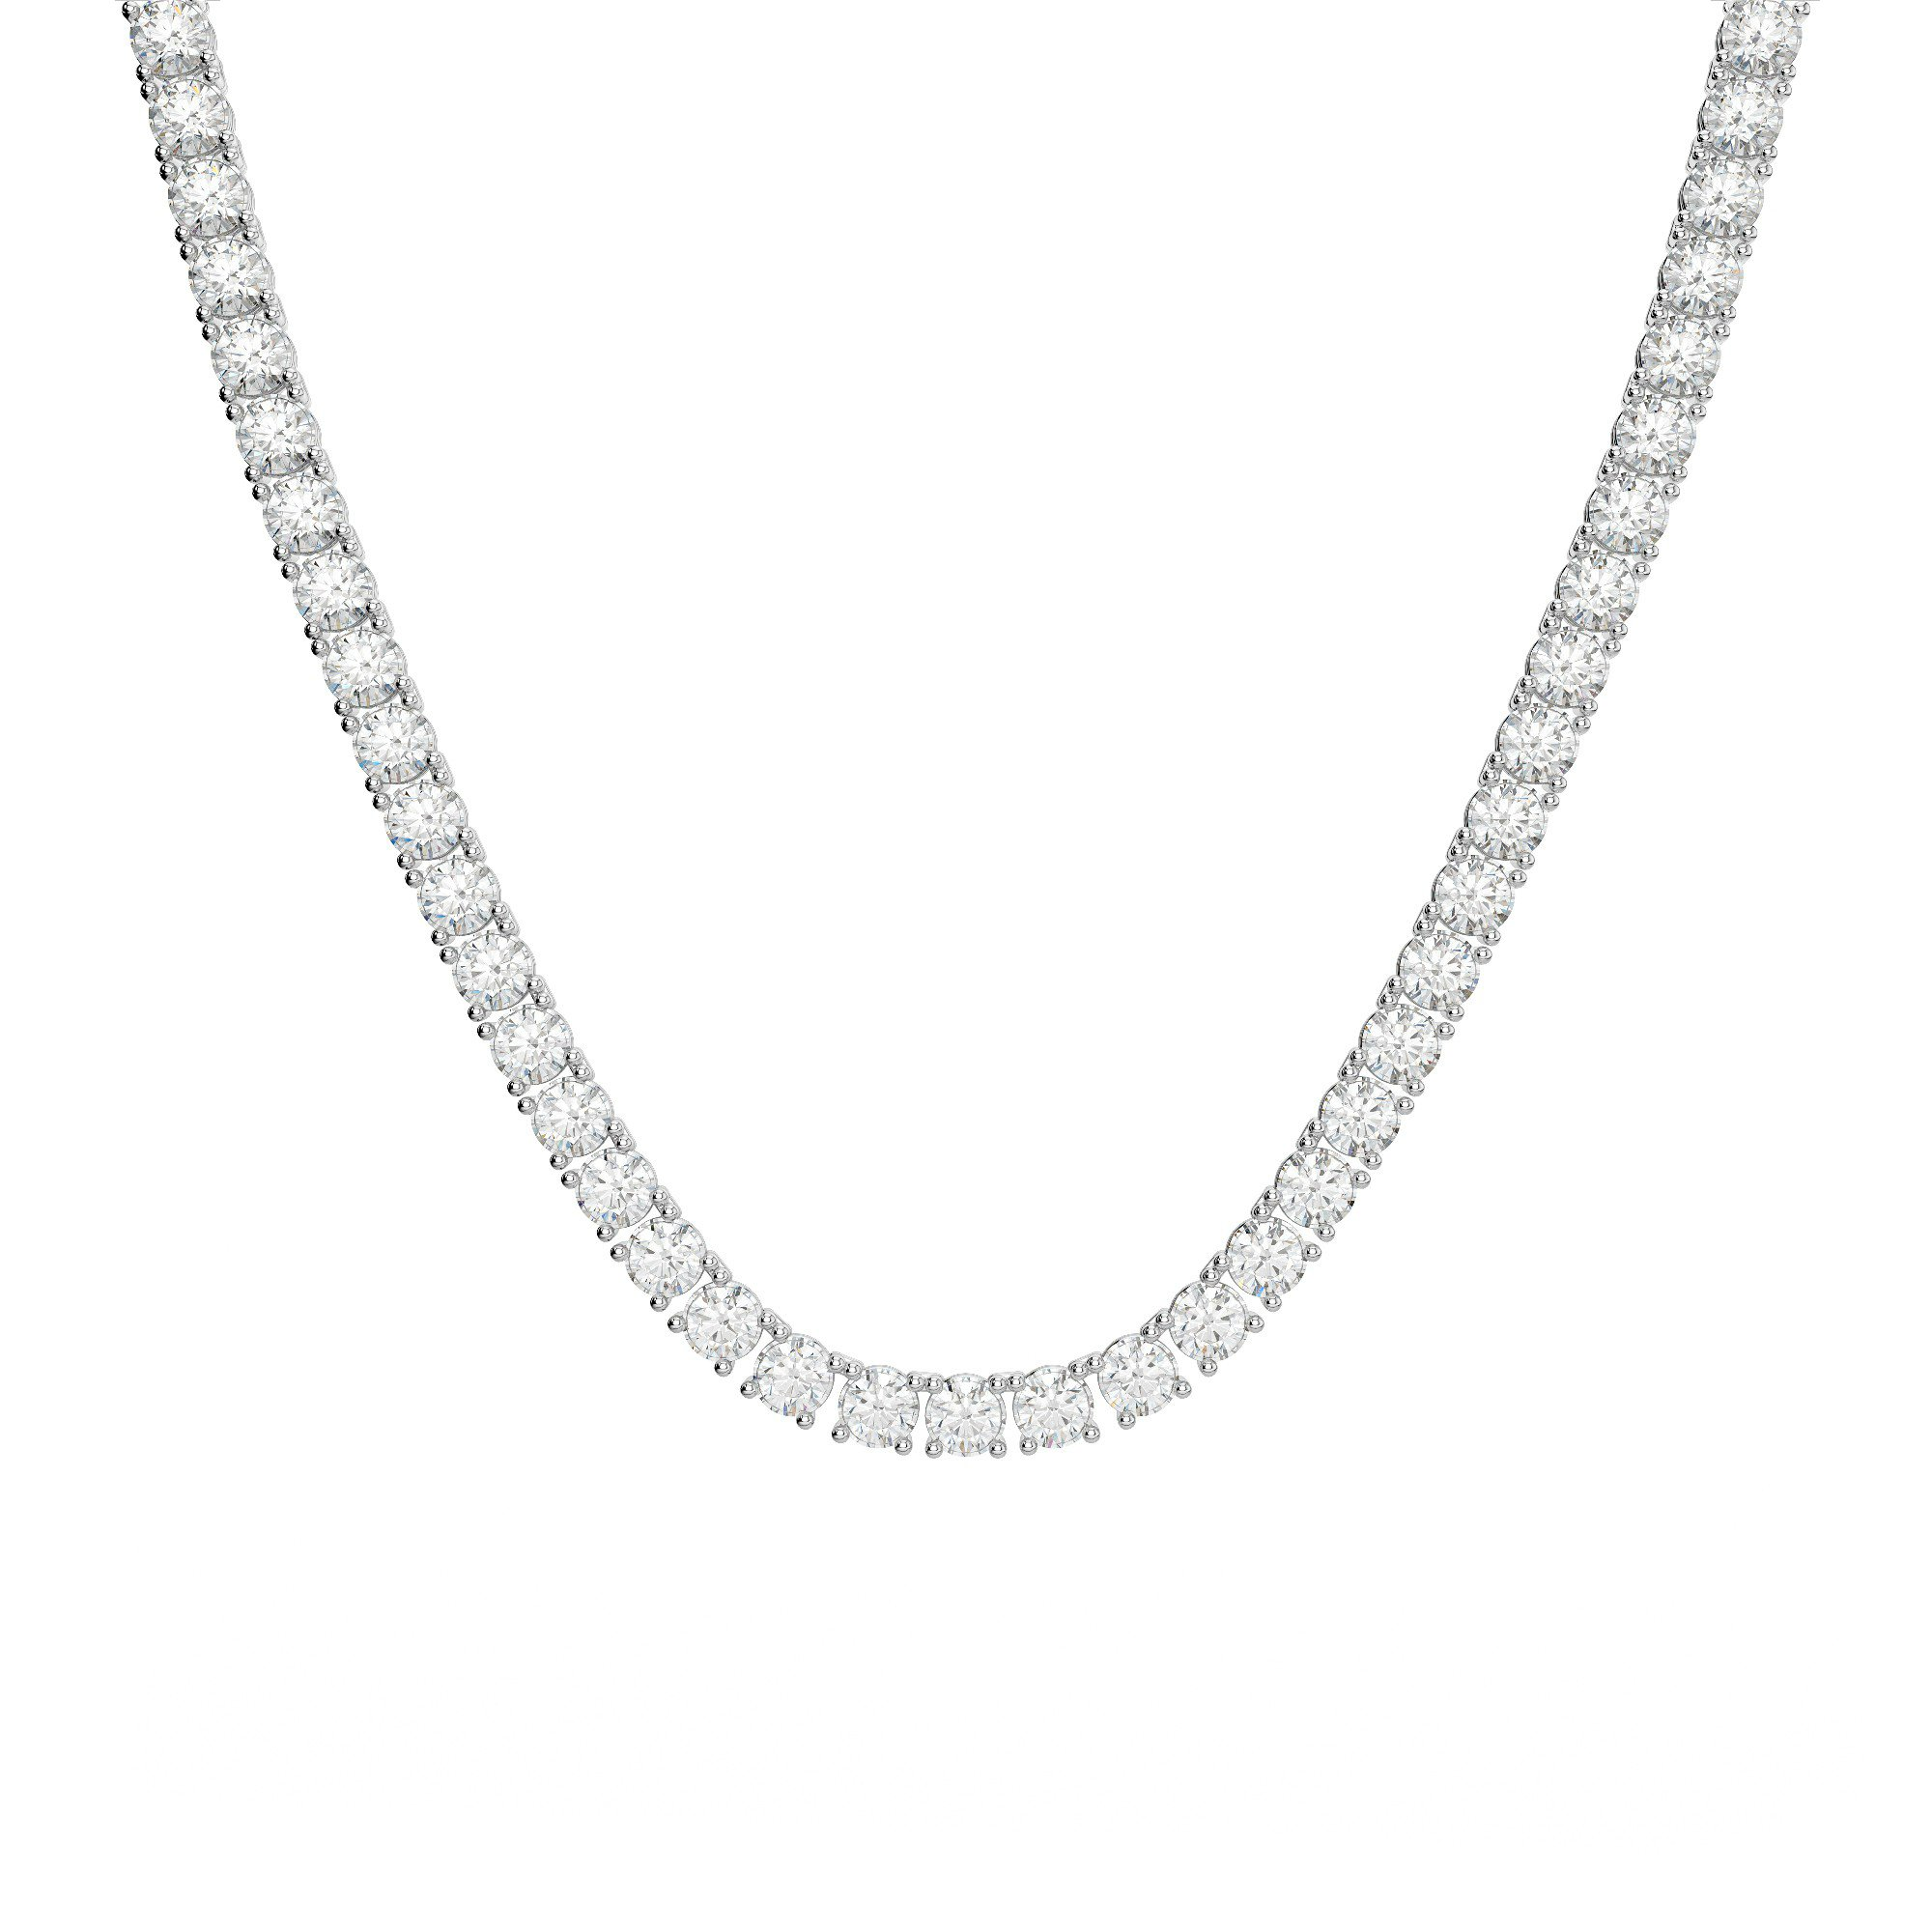 40 Carat Harro Moissanite Tennis Necklace